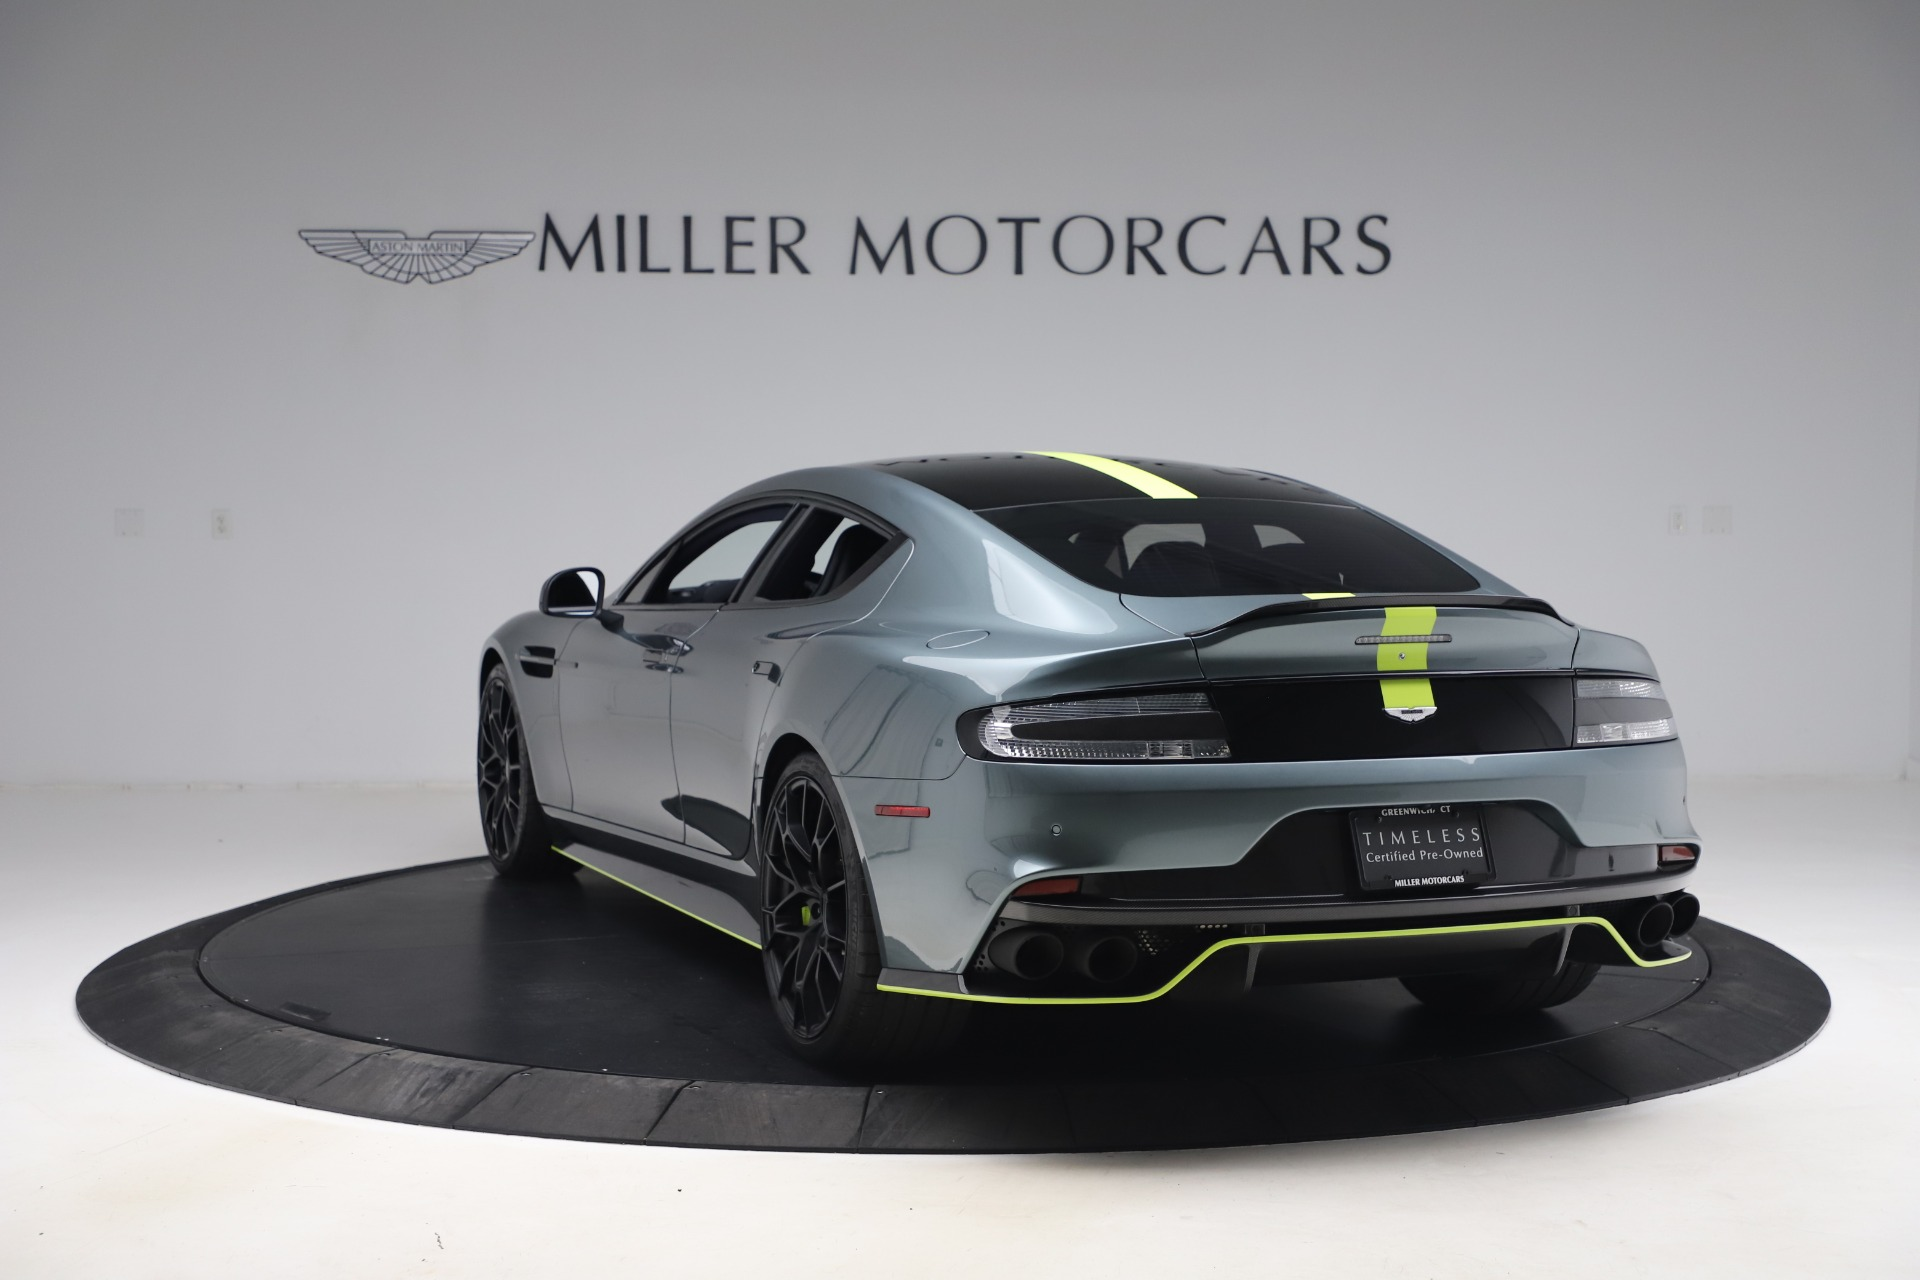 Pre Owned 2019 Aston Martin Rapide Amr For Sale 187 900 Mclaren Greenwich Stock 7979